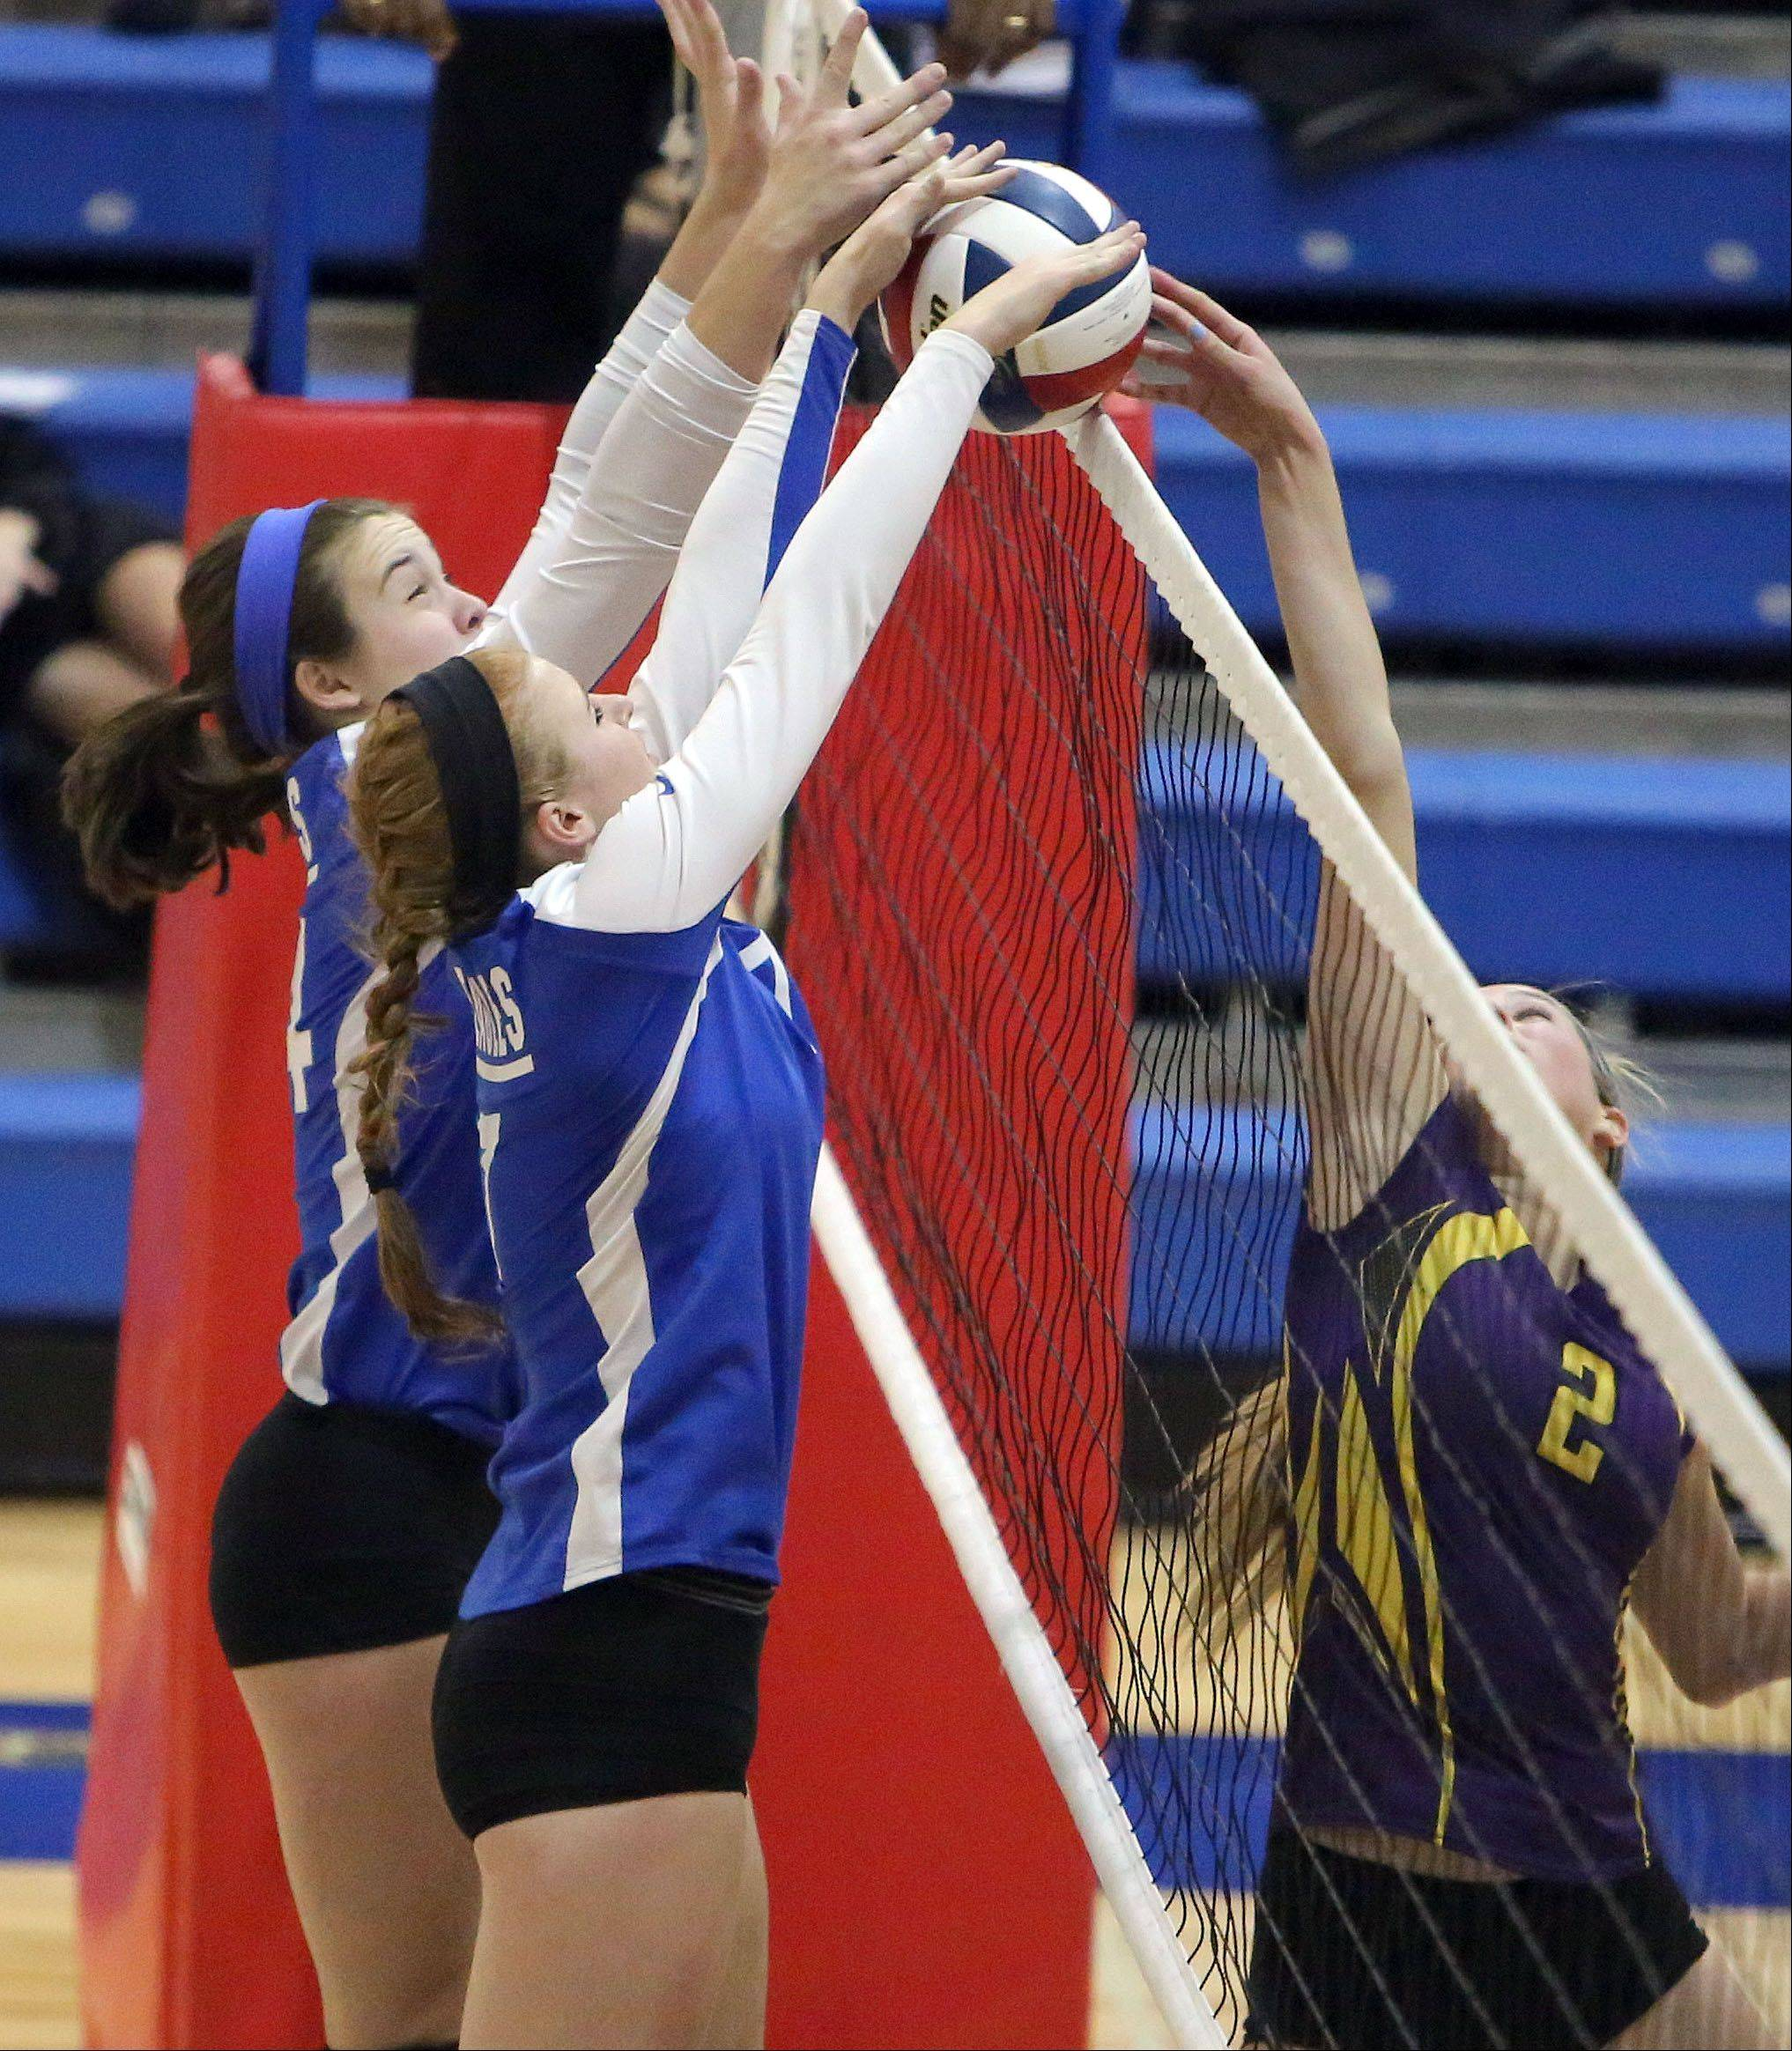 Lakes' Megan Behrendt, left, and Allie Grandos go up to block the shot of Wauconda's Susan Karhoff during the girls volleyball regional semifinal game Tuesday at Lakes.